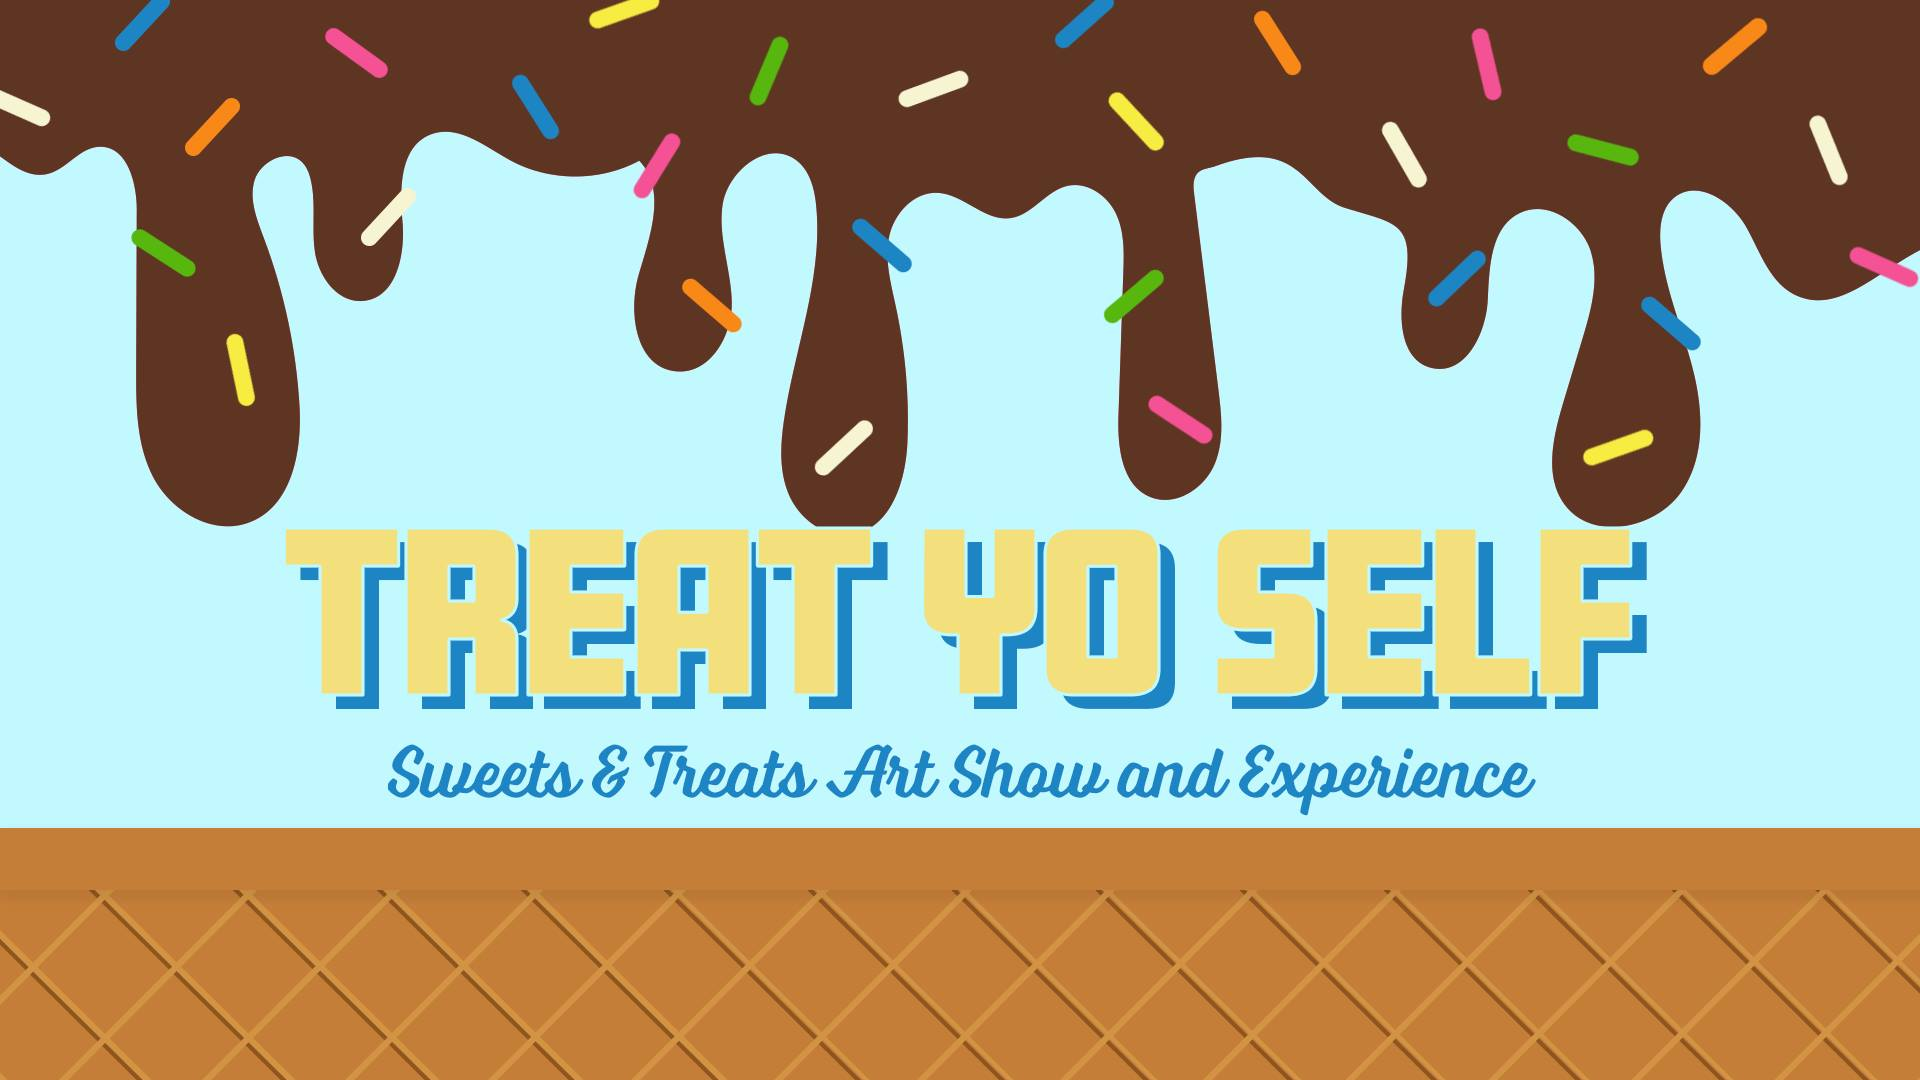 TREAT TO SELF: SWEETS & TREATS ART SHOW & EXPERIENCE - June 28th, 7:00 pm - 11:00 pm